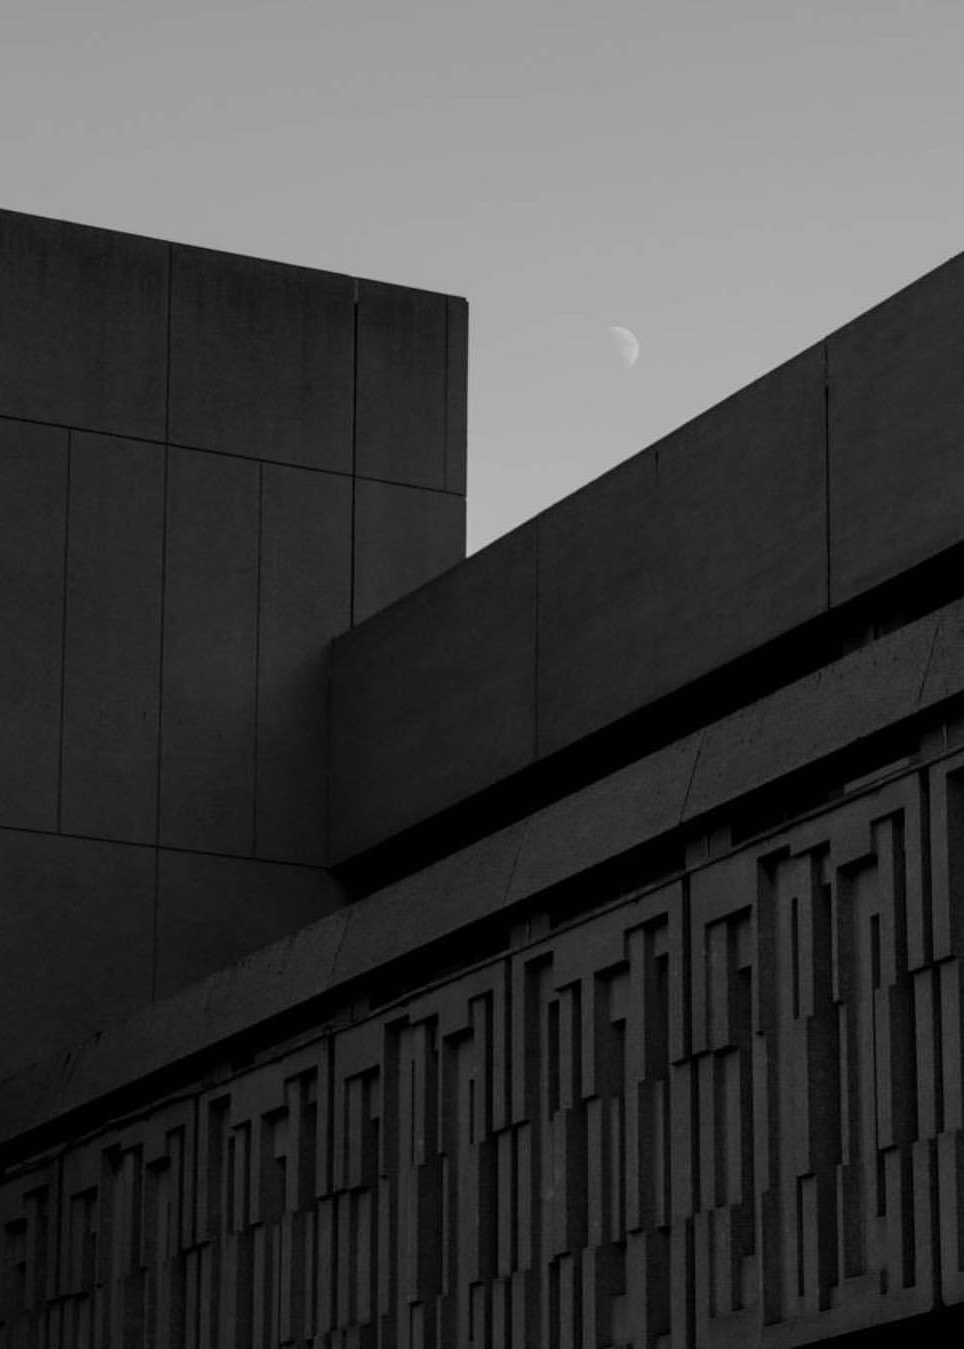 Come along for an exciting three hour walking photography tour as we discuss the rich history and legacy of these unique brutalist structure.